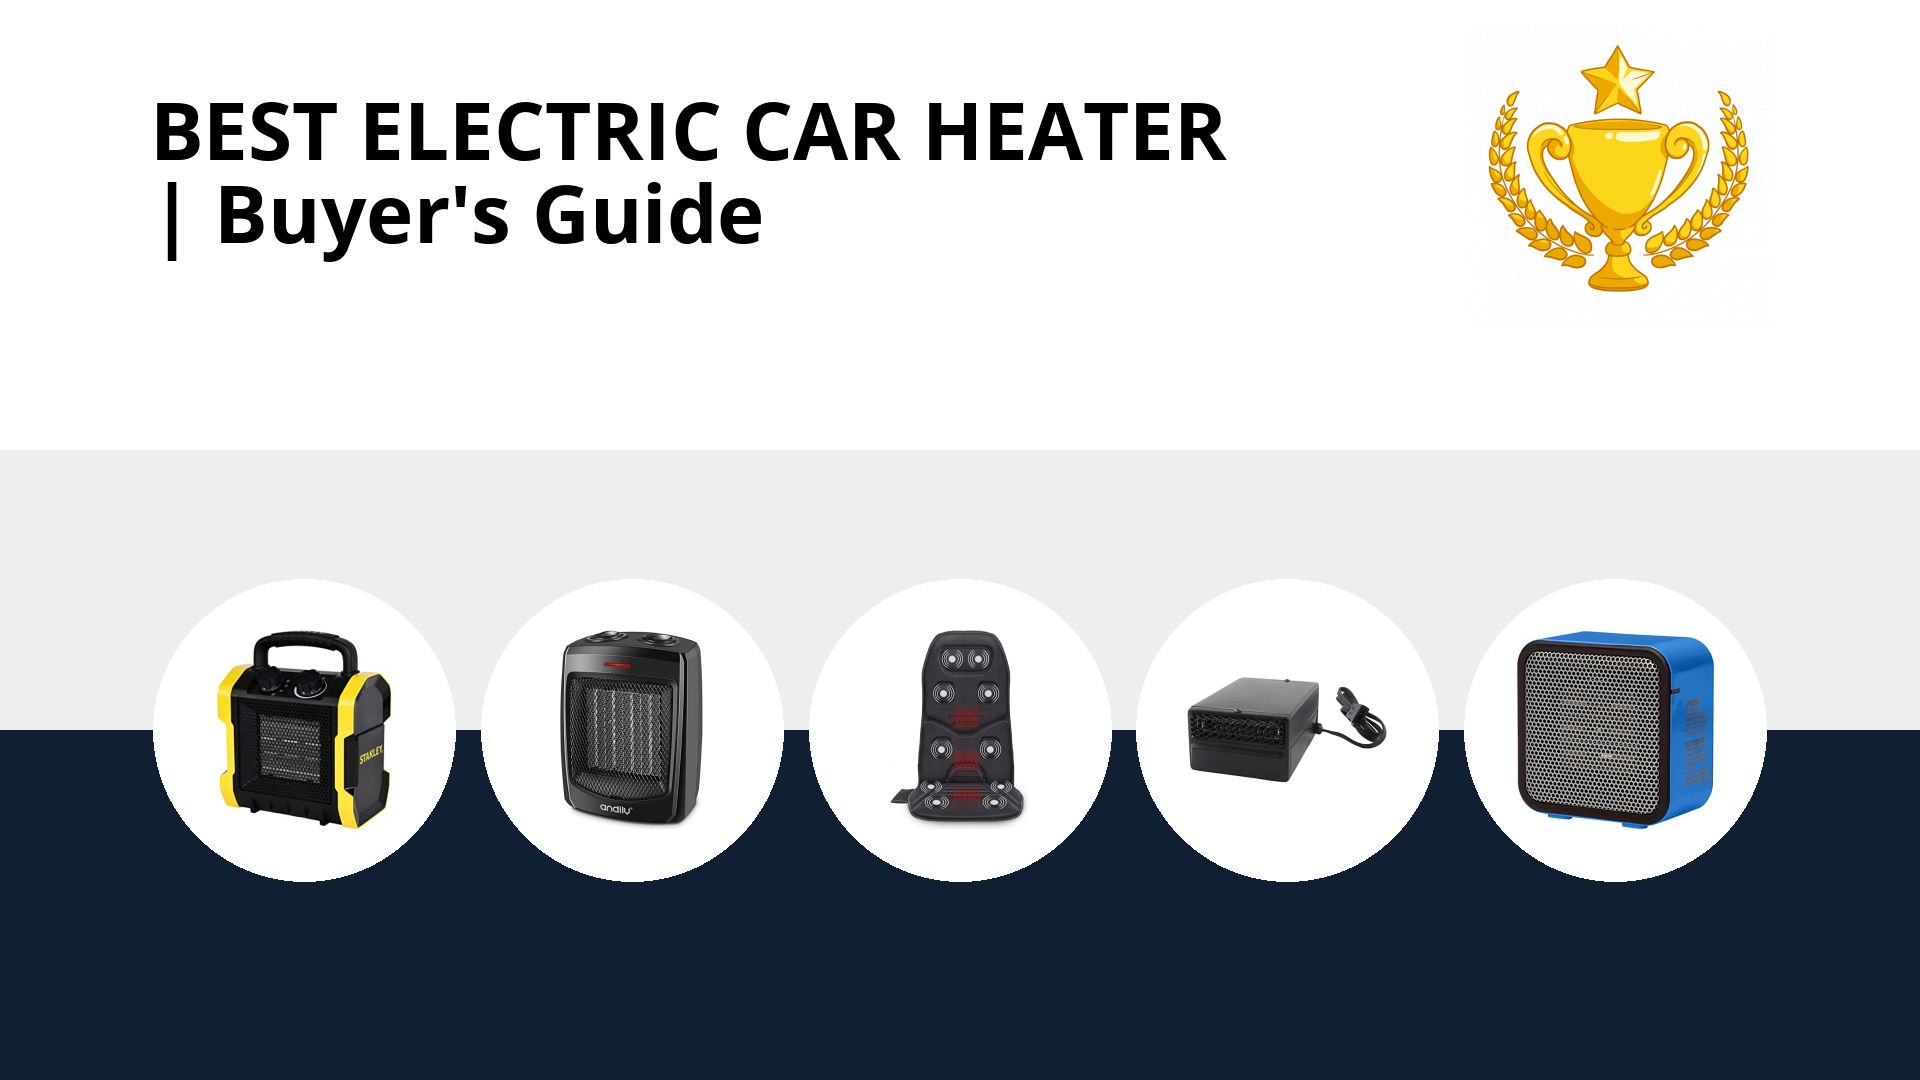 Best Electric Car Heater: image